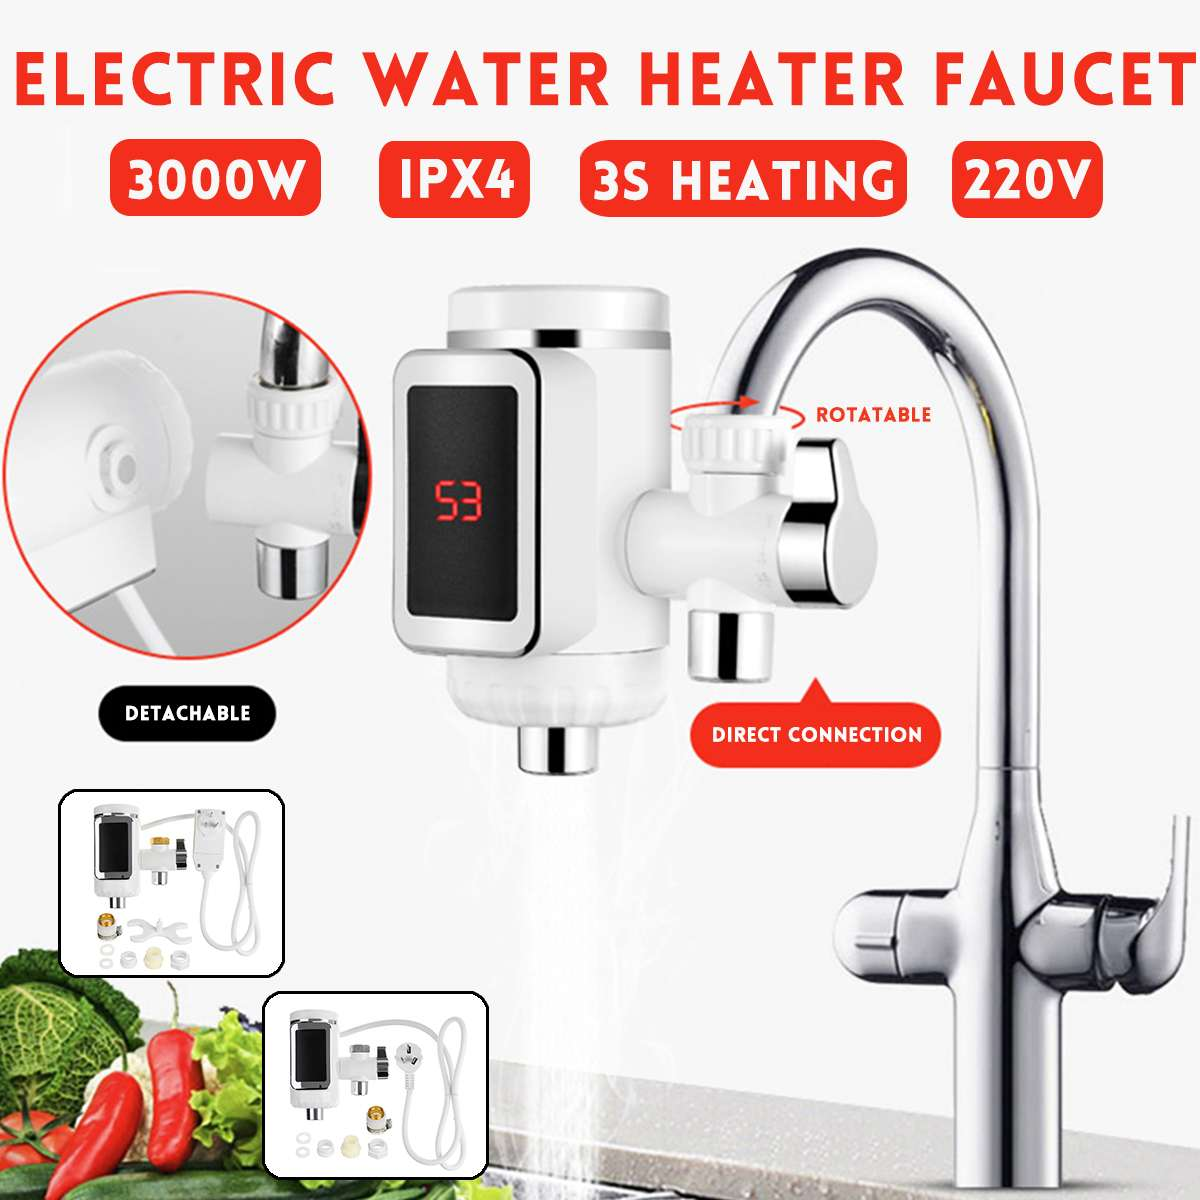 220V 3000W Electric Water Heater Heating Waterproof LED Display Home For Bathroom Kitchen Tap Instant Hot Water Faucet Heater